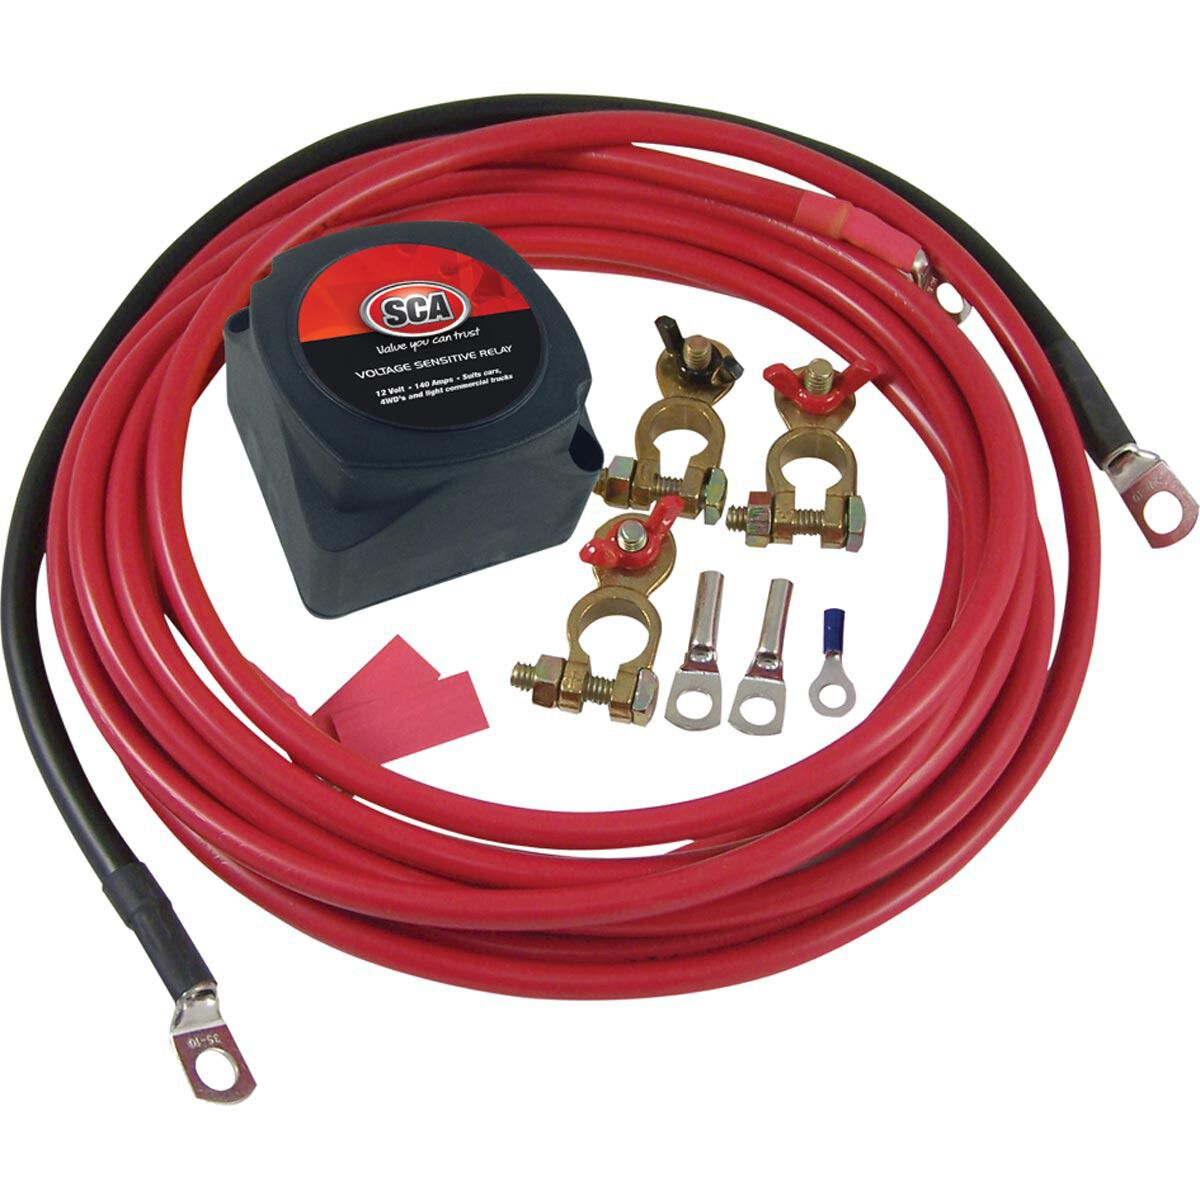 hight resolution of sca dual battery isolator kit 12 volt scaau hi res